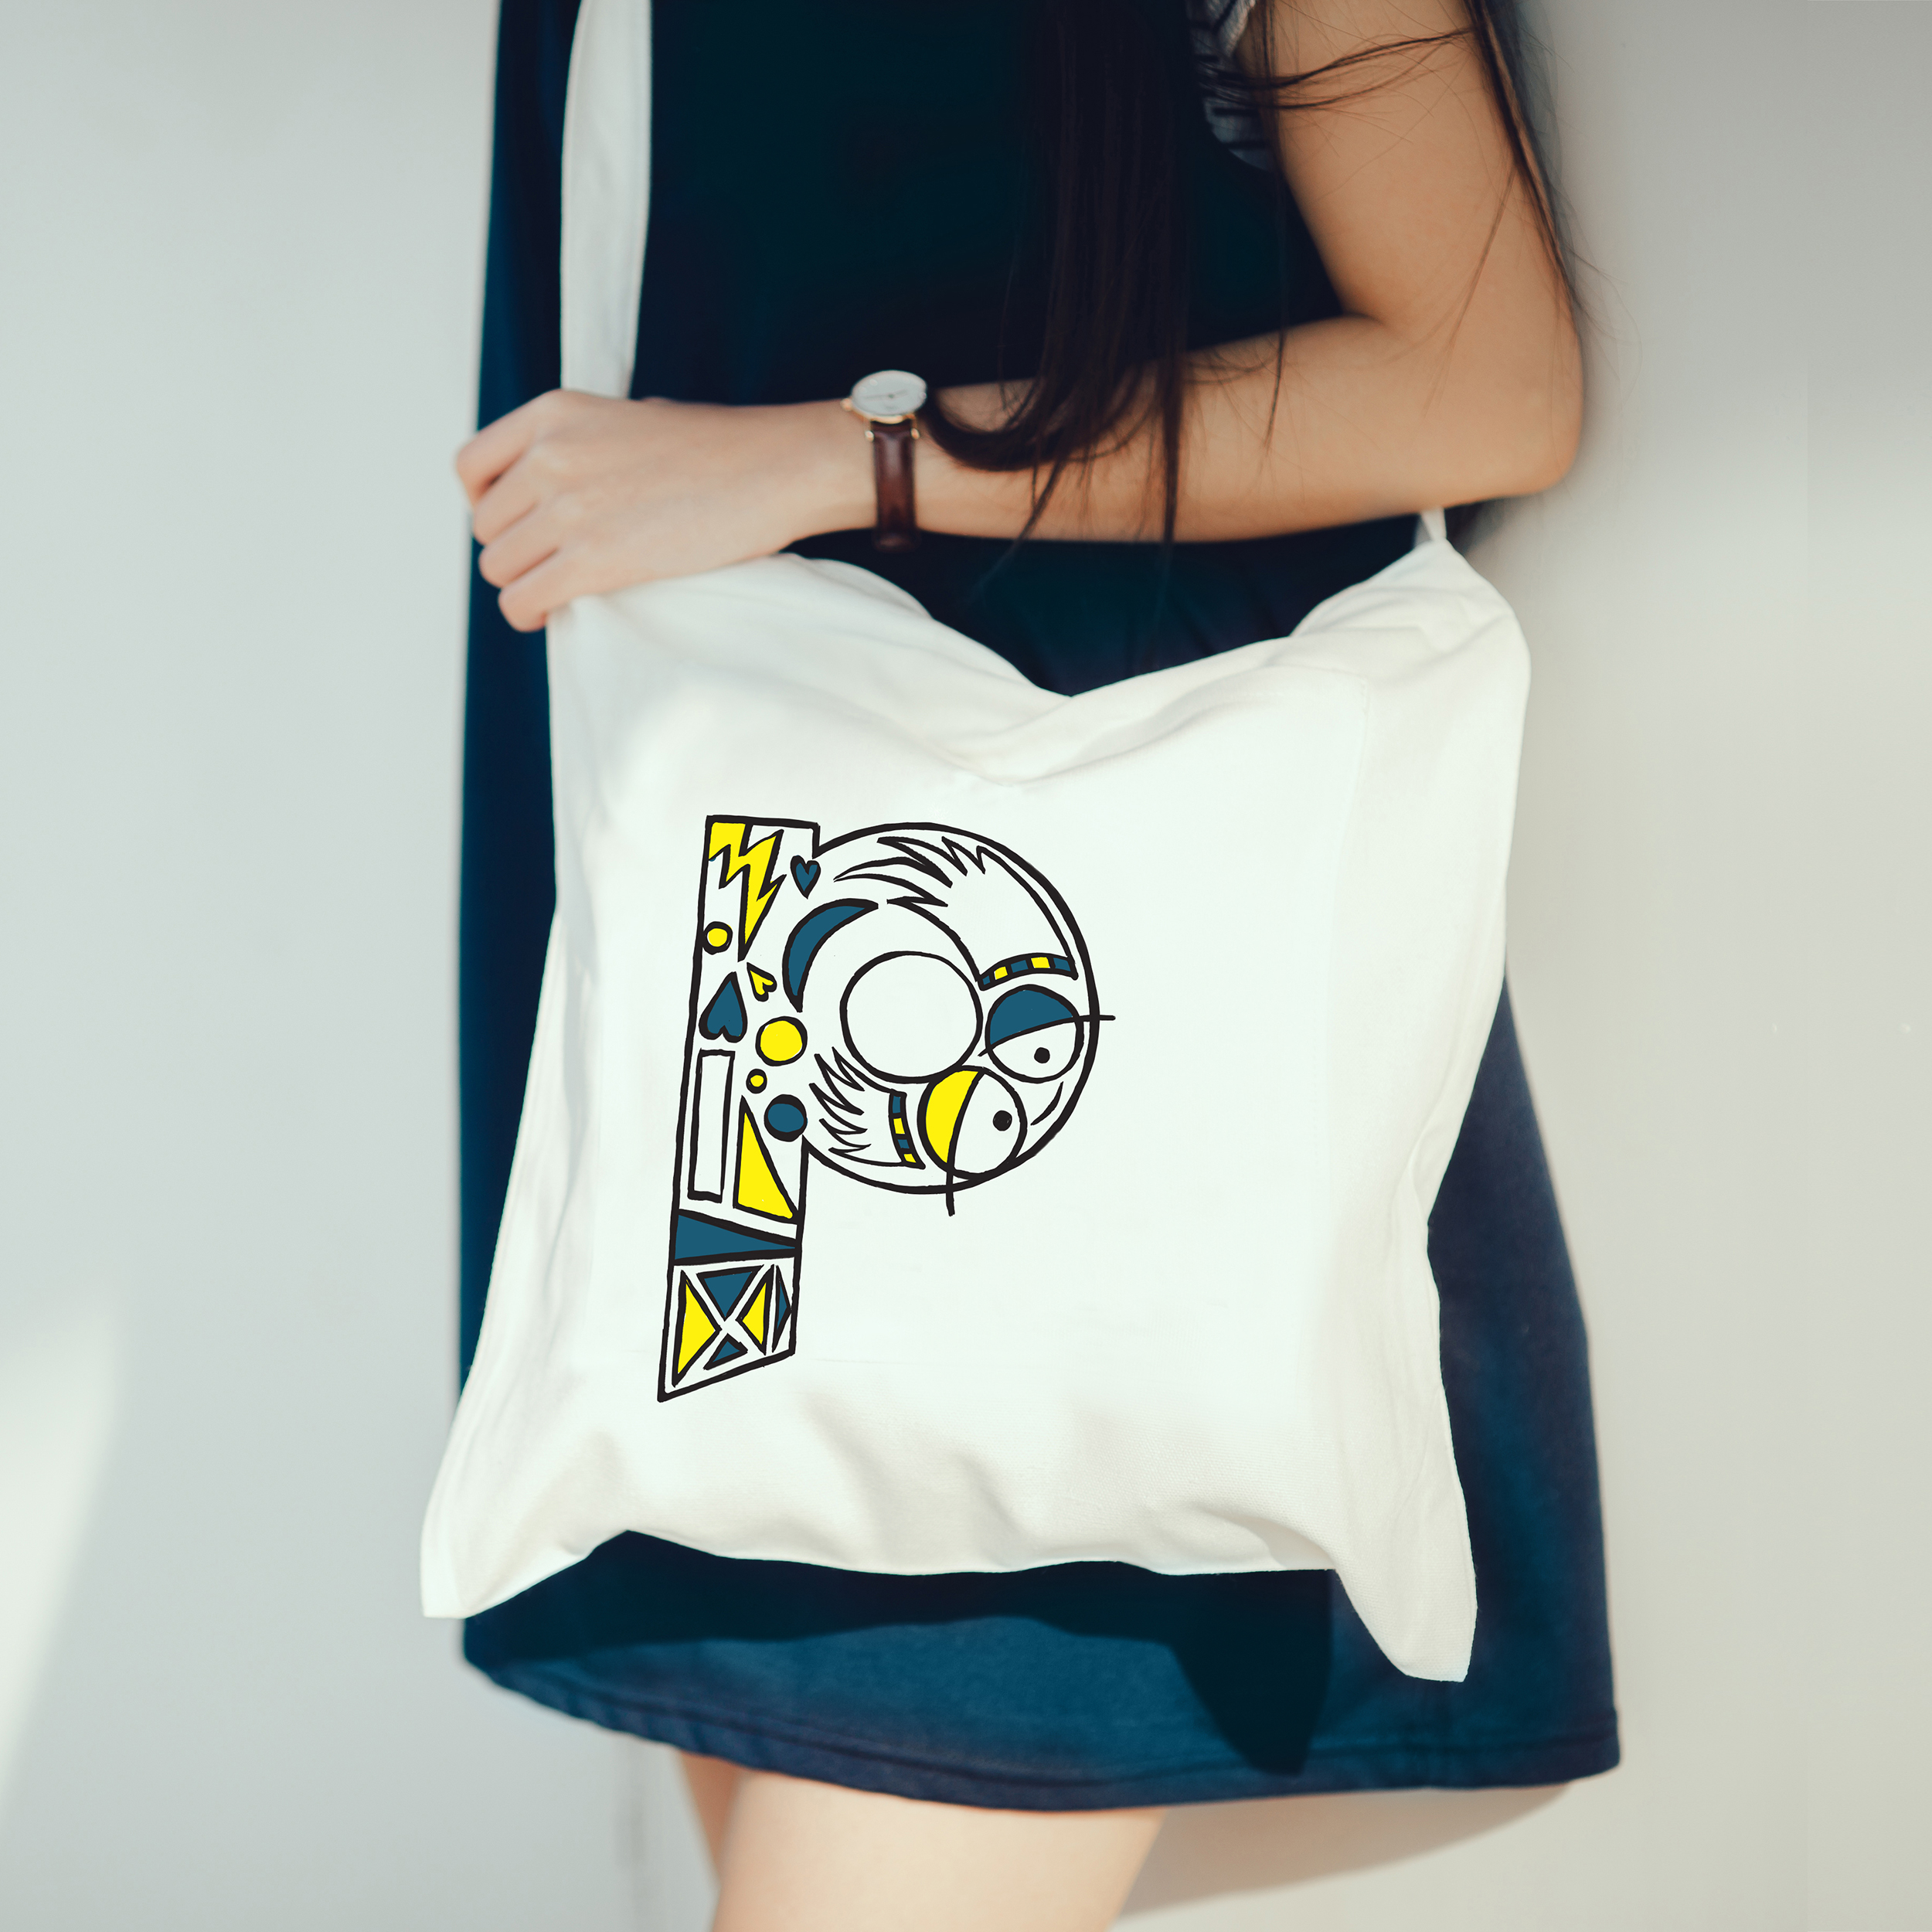 Typo collection - t-shirts & bags 9